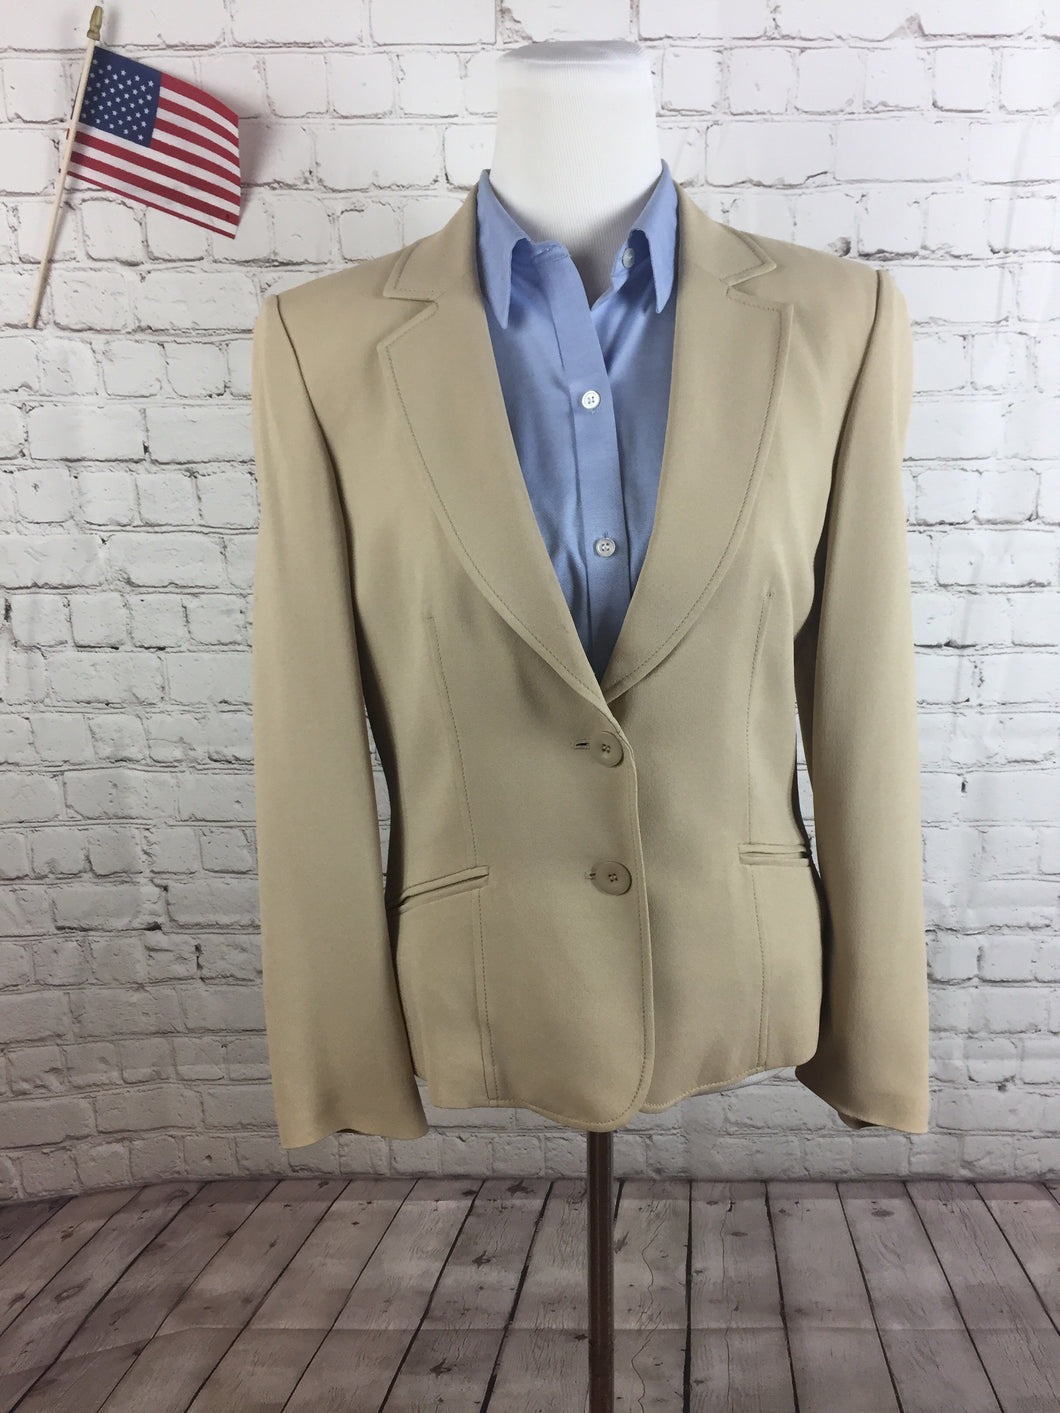 Talbots Women's Beige Blazer Size 10 $215 - SUIT CHARITY OUTLET